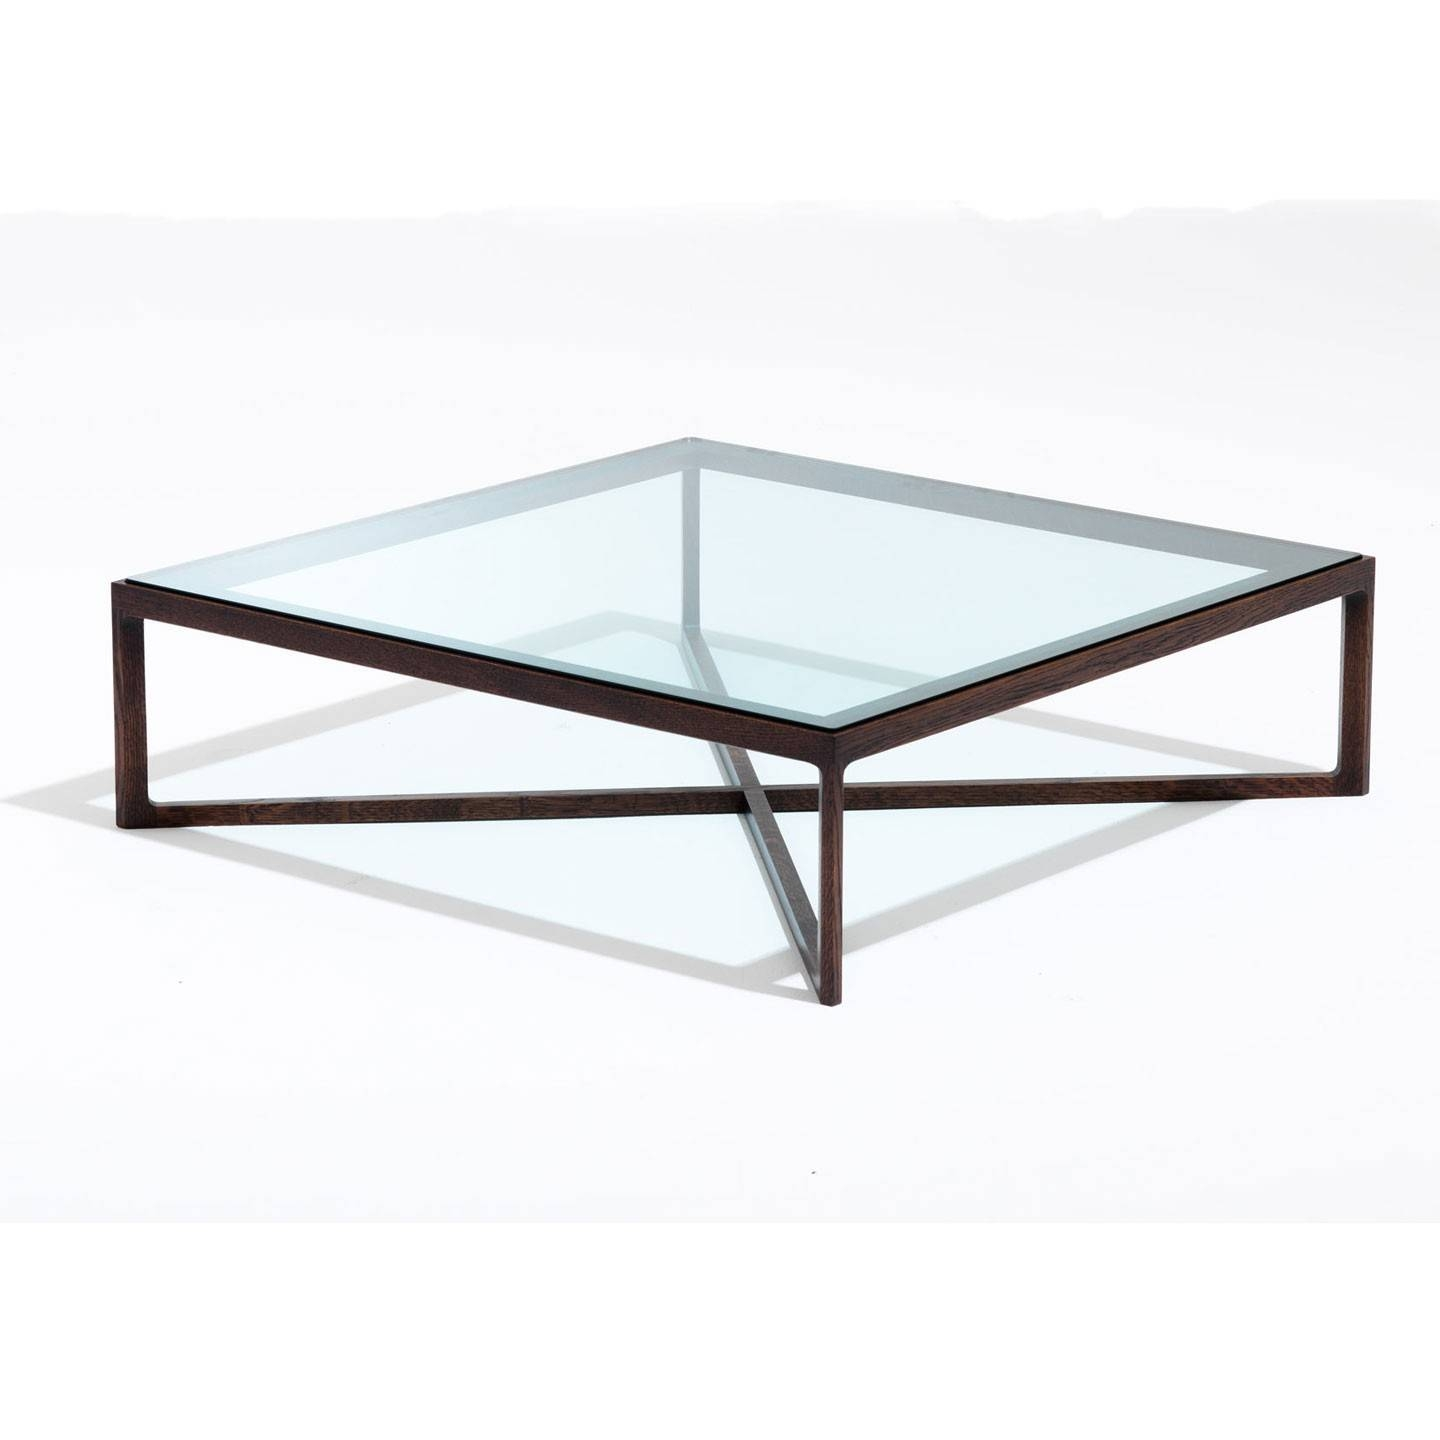 Square Coffee Table With Metal Legs | Coffee Tables Decoration throughout Glass And Metal Coffee Tables (Image 28 of 30)